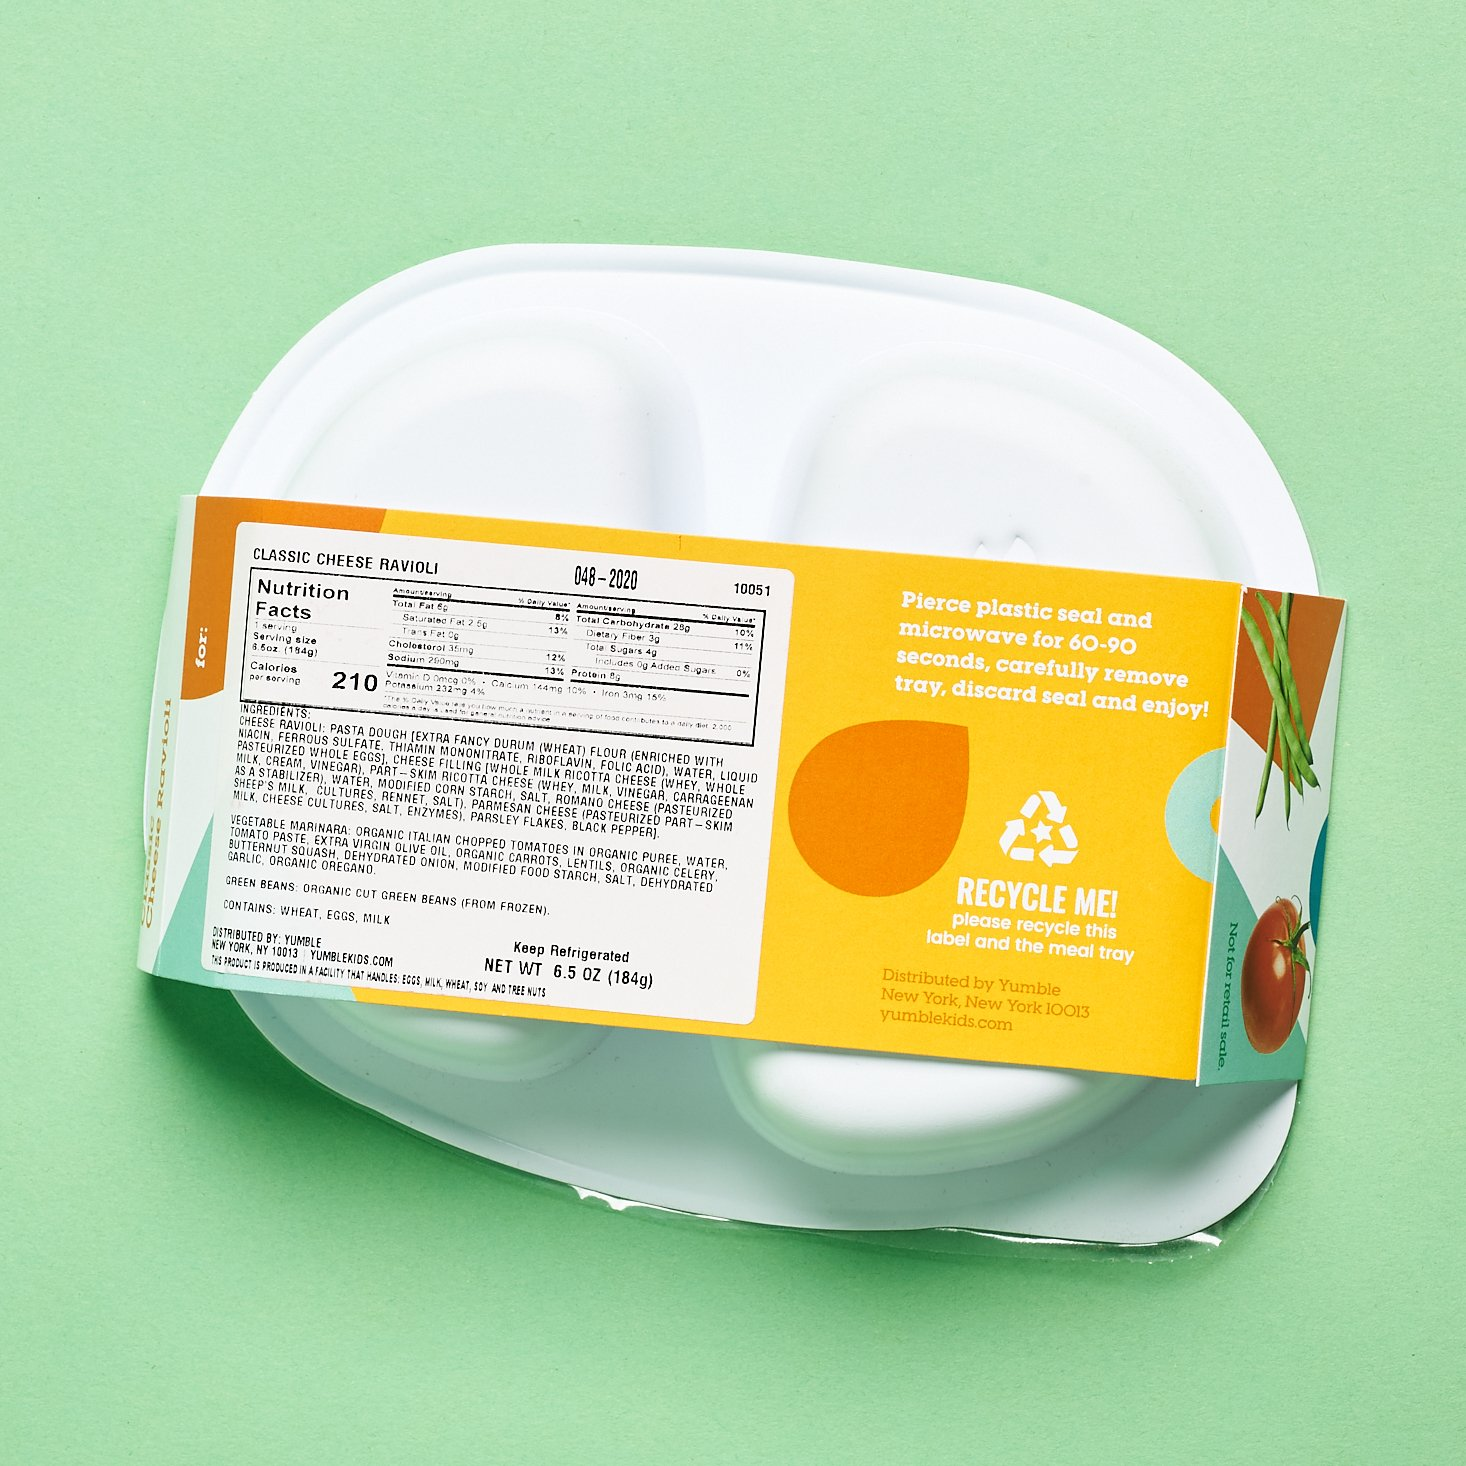 Yumble Subscription nutrition facts for ravioli meal